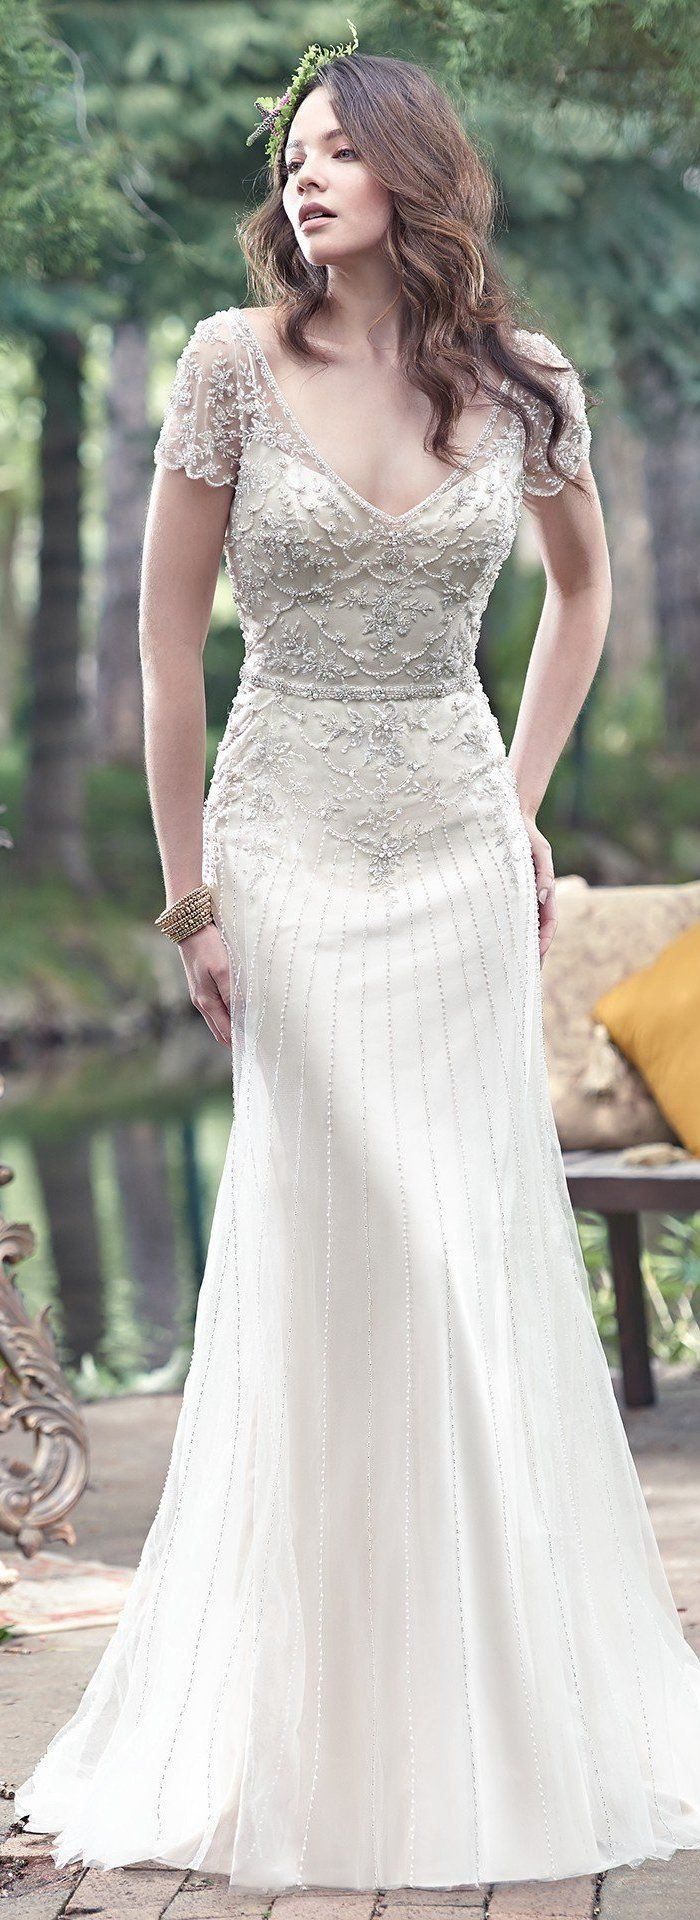 Vintage wedding gowns with geometric details amal wedding dress by